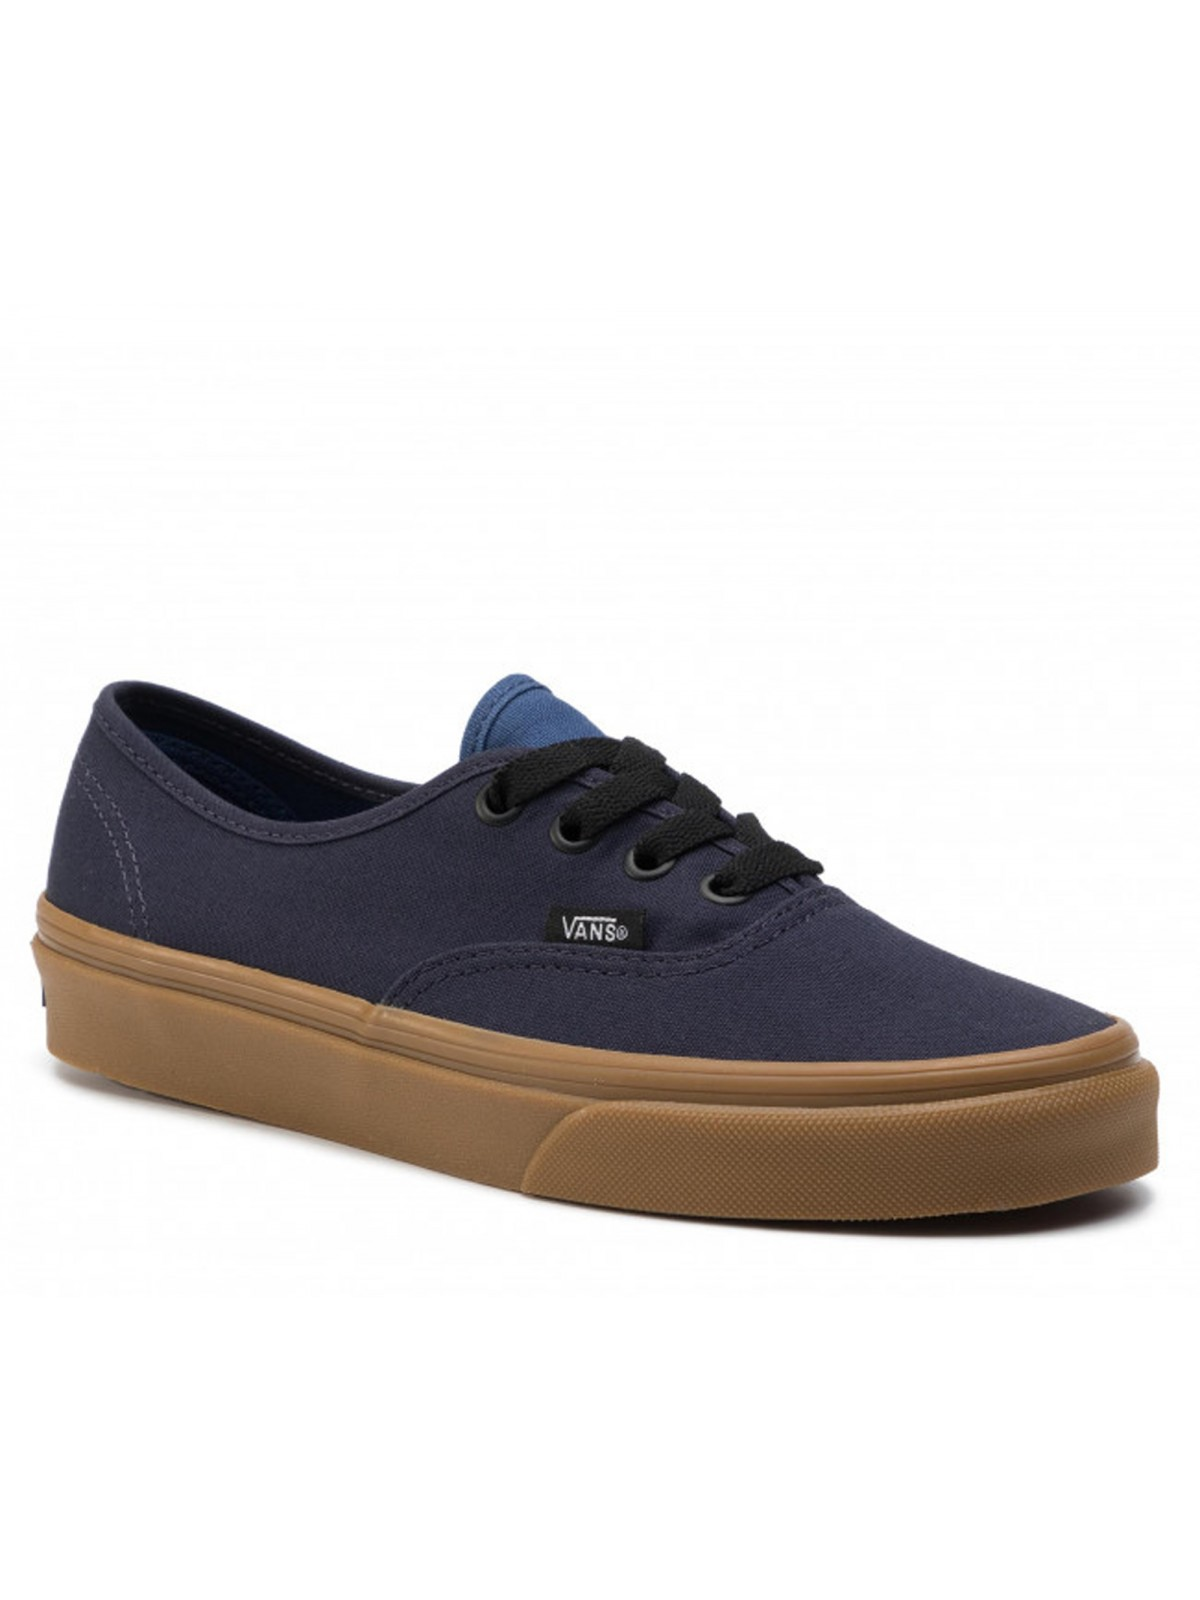 Vans Authentic gum navy